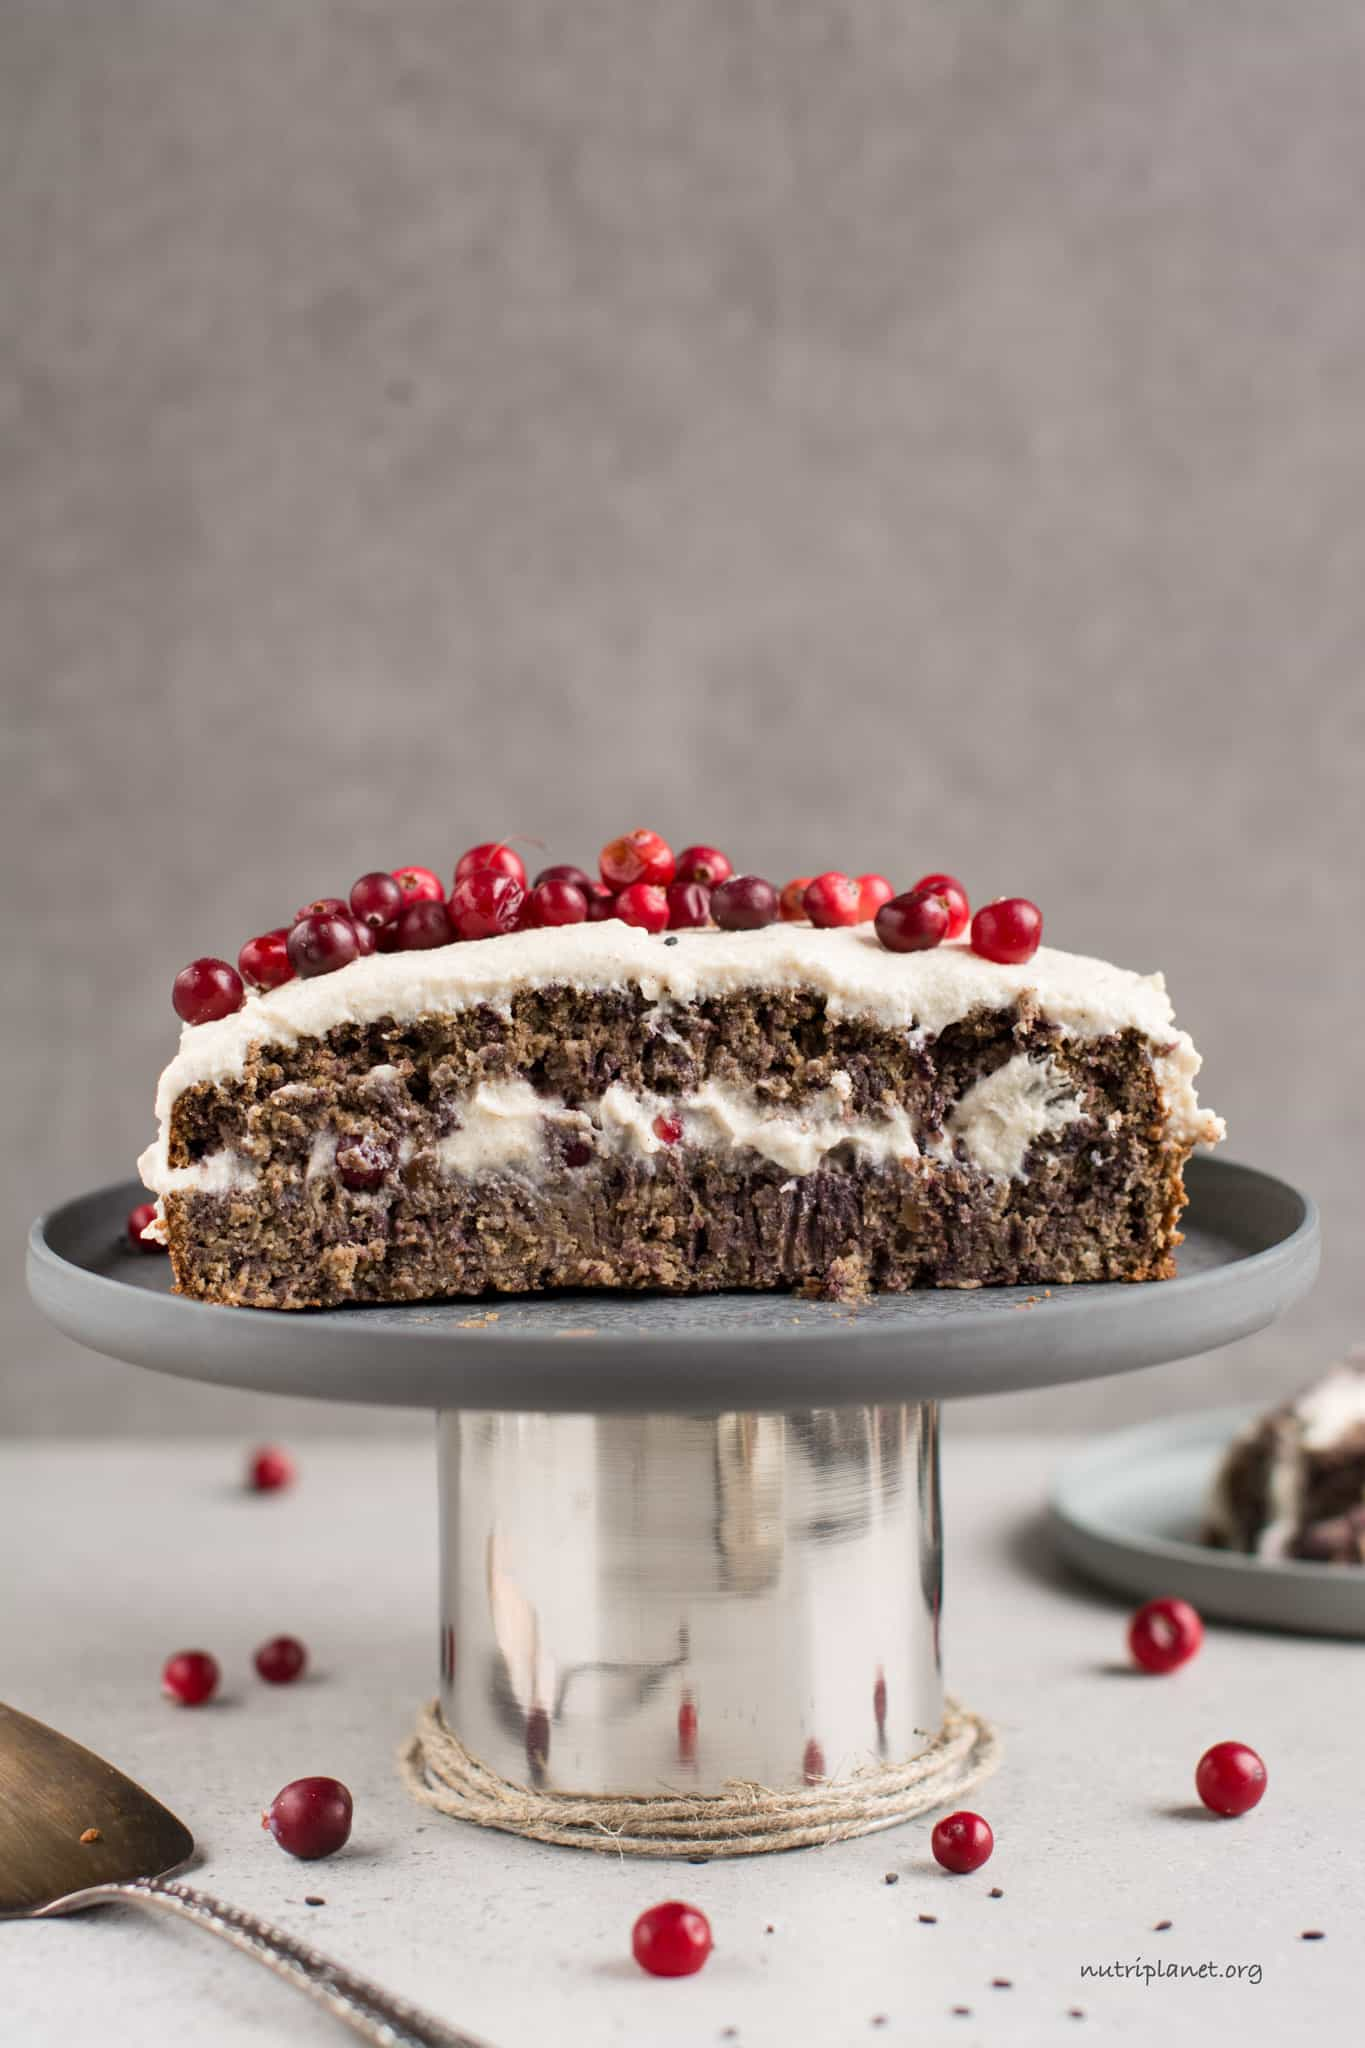 Carrot cake cut in half on cake plate with cranberry topping.